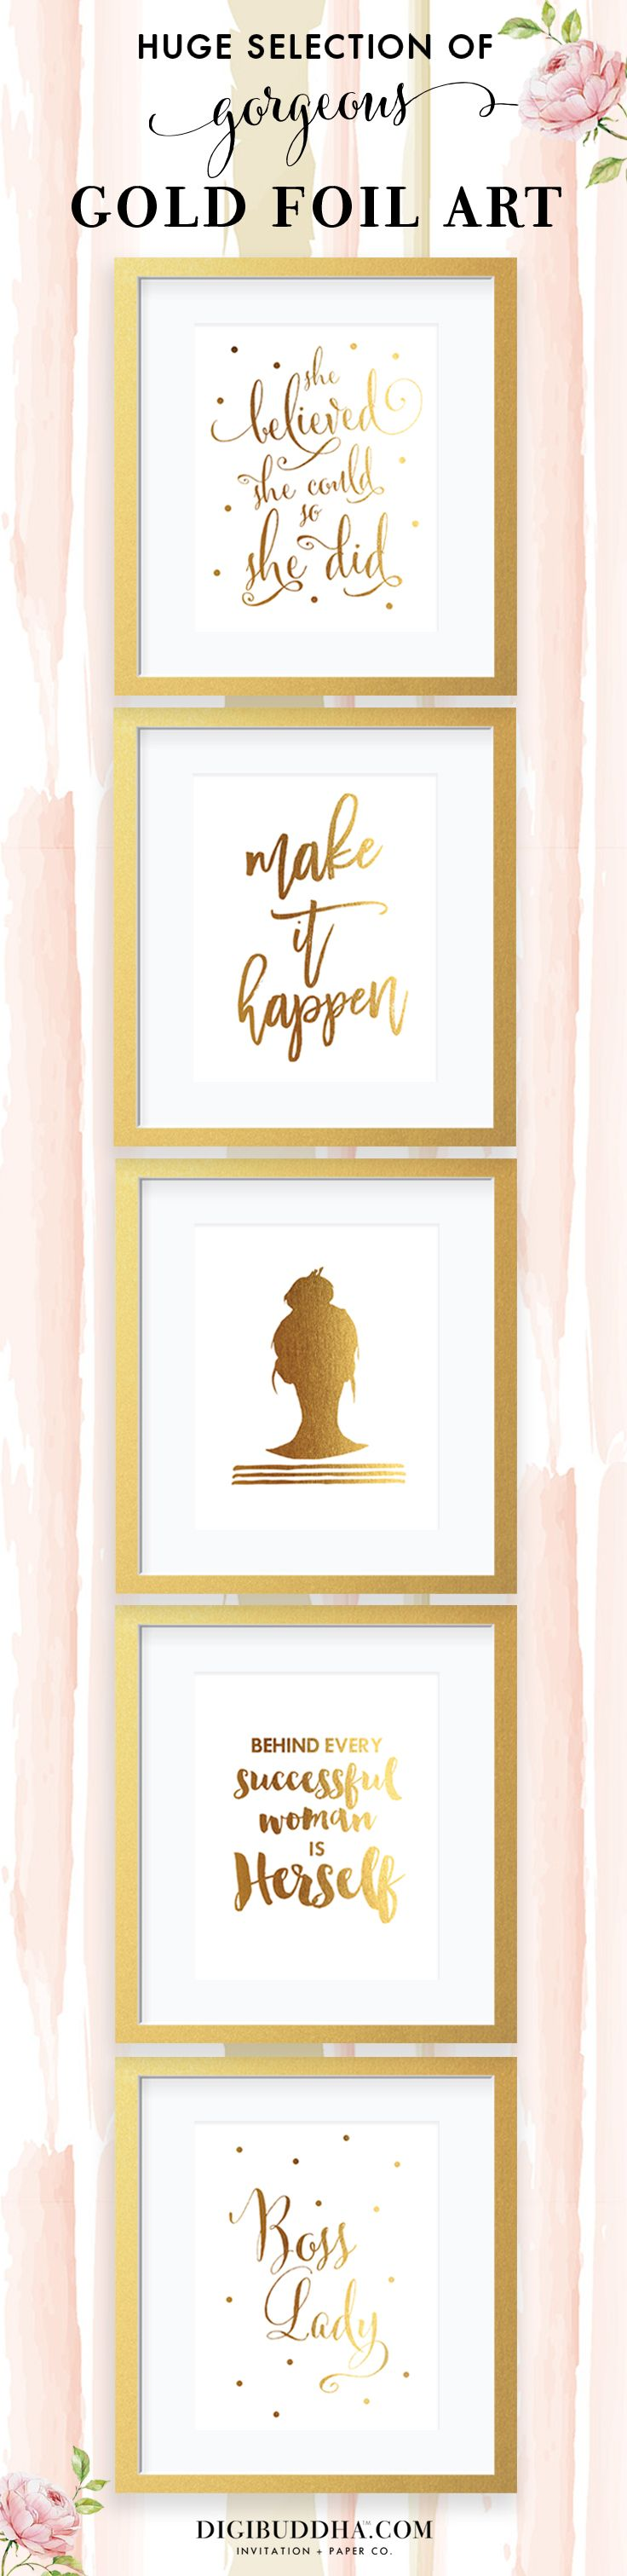 """Chic gold foil art prints in tons of gorgeous designs.  The perfect gift for your favorite girl boss & the perfect office decor to add a hint of gold.  All prints also available in silver foil as well, in either 5x7"""" or 8x10"""".  Check out these and SO many more gold foil posters at digibuddhashop.com.     gold foil nursery art     gold foil office decor     gold foil posters, gold foil decor   """